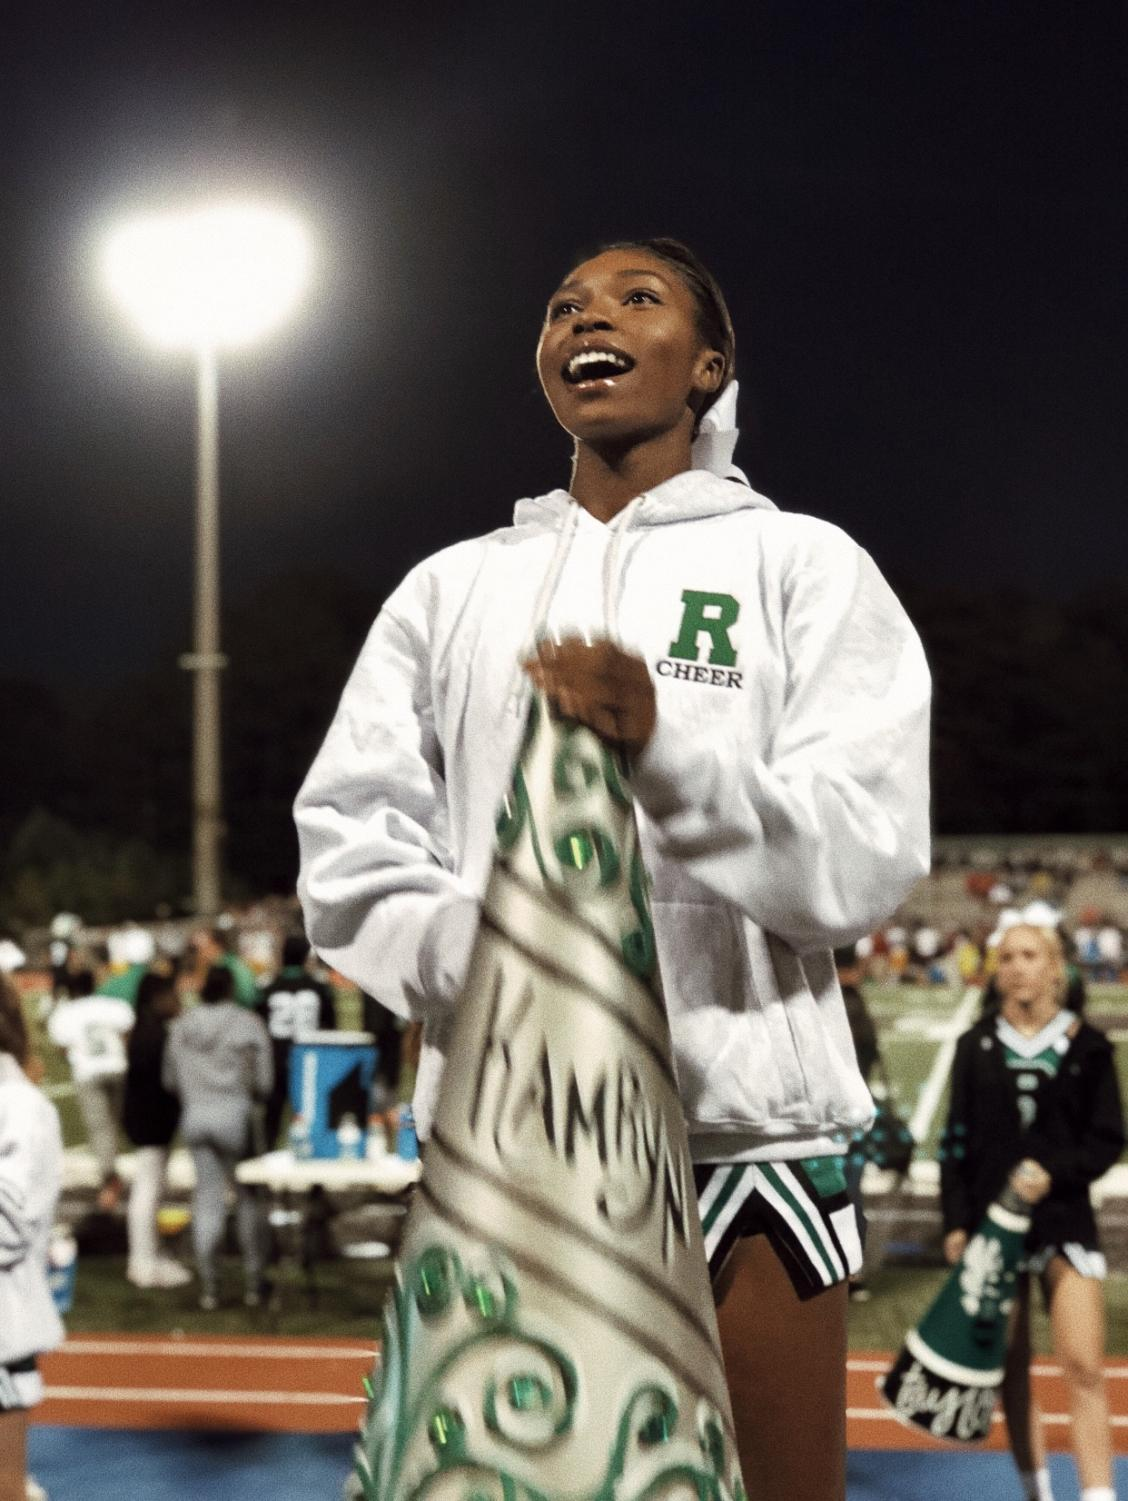 """My smile when Roswell is in the lead, is brighter than no other! I love supporting the boys"" says Kamryn.